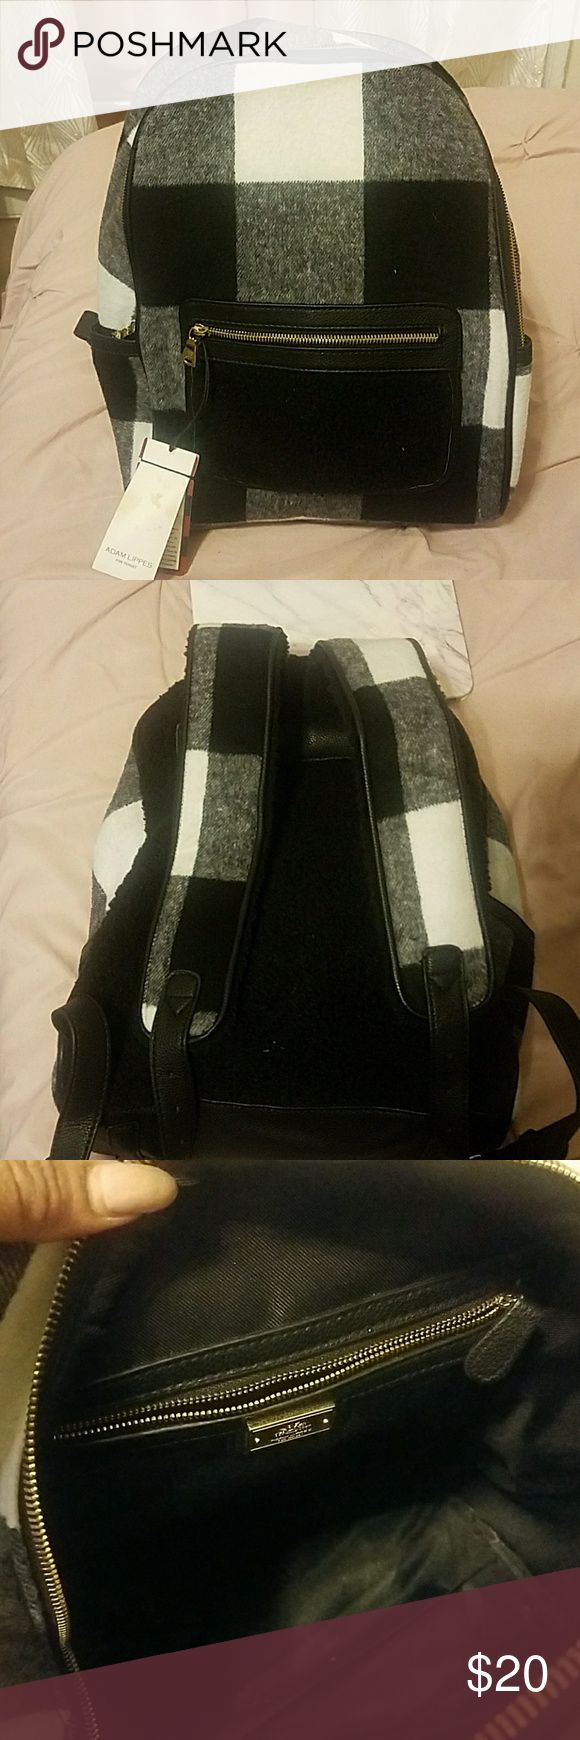 Adam lippes for target backpack Black and white plaid back pack. The back of the back pack is black faux Shearling. Wool like material. Adjustable straps. About 14 inches long 11 1/2 wide. Adam Lippes For Target Bags Backpacks